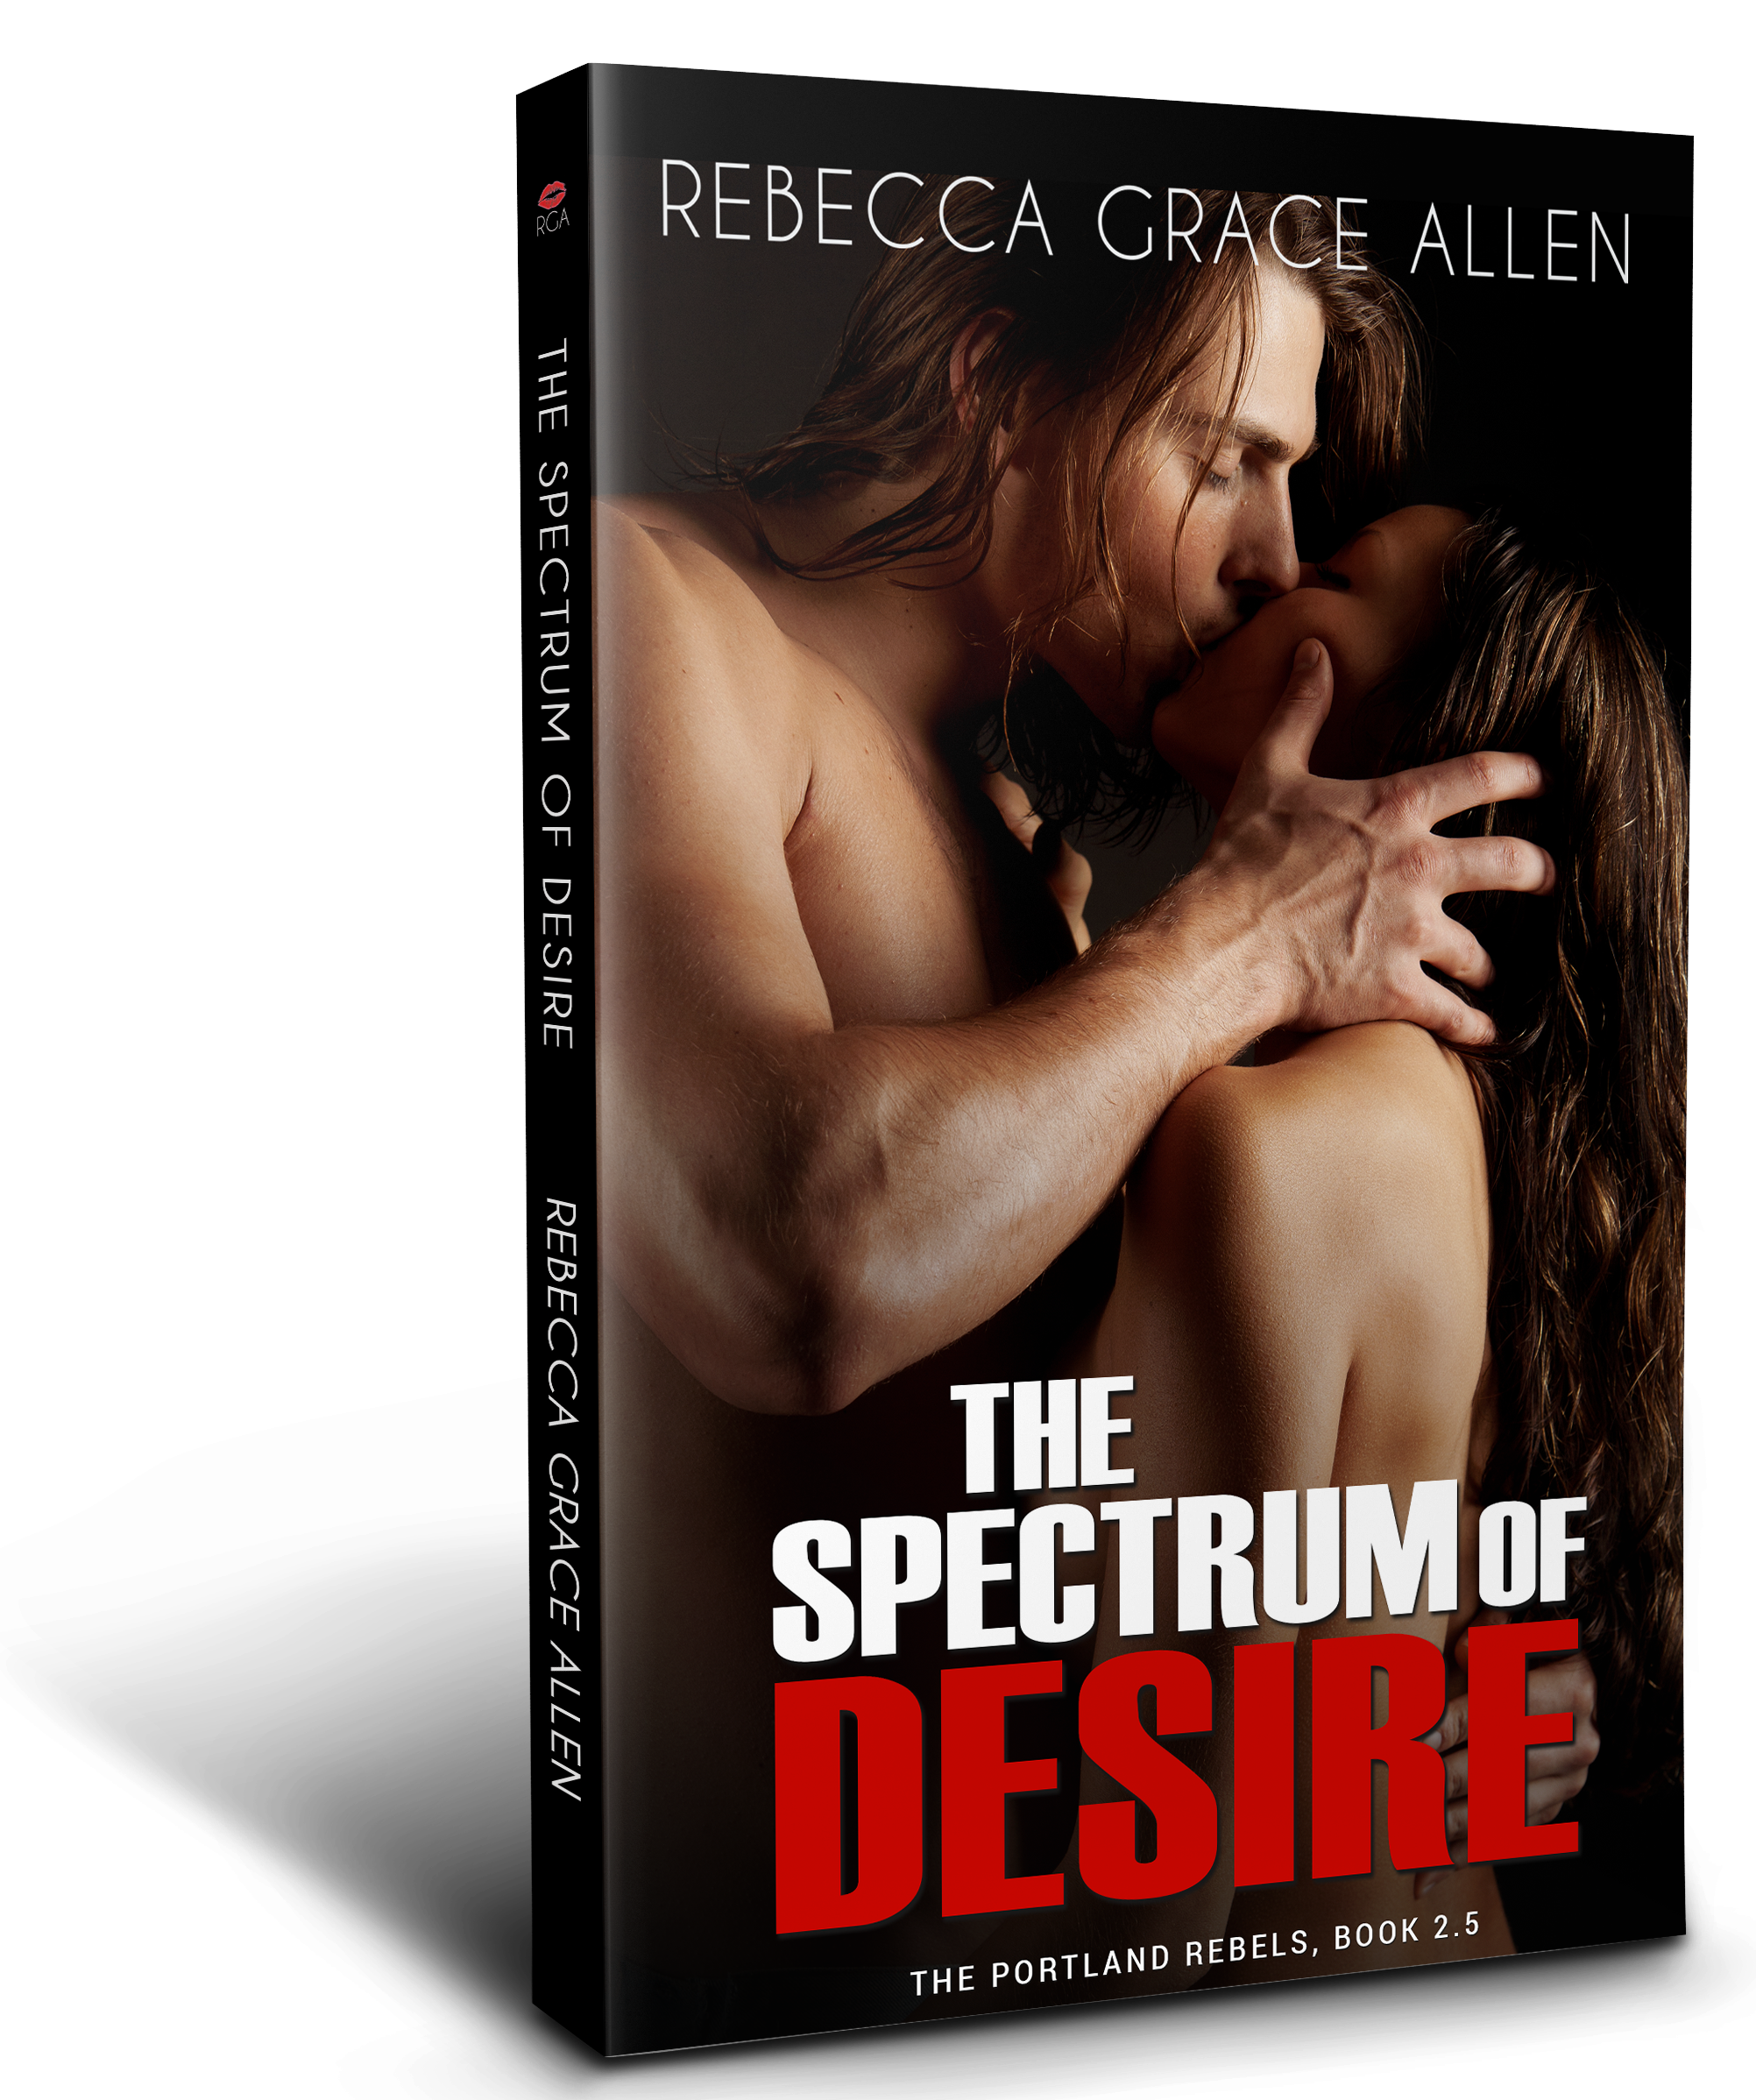 The Spectrum of Desire